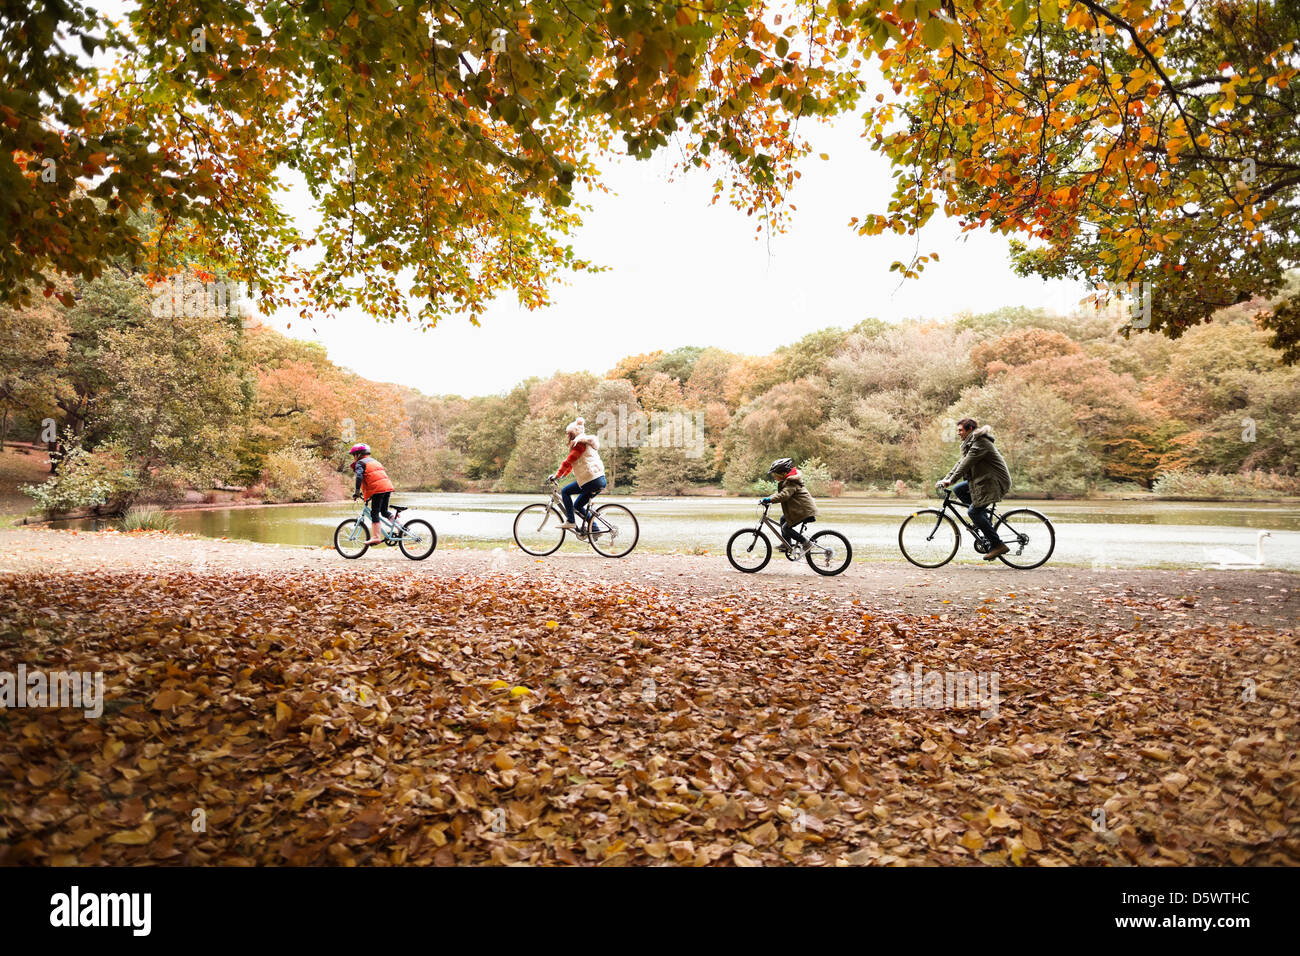 Family riding bicycles in park Photo Stock